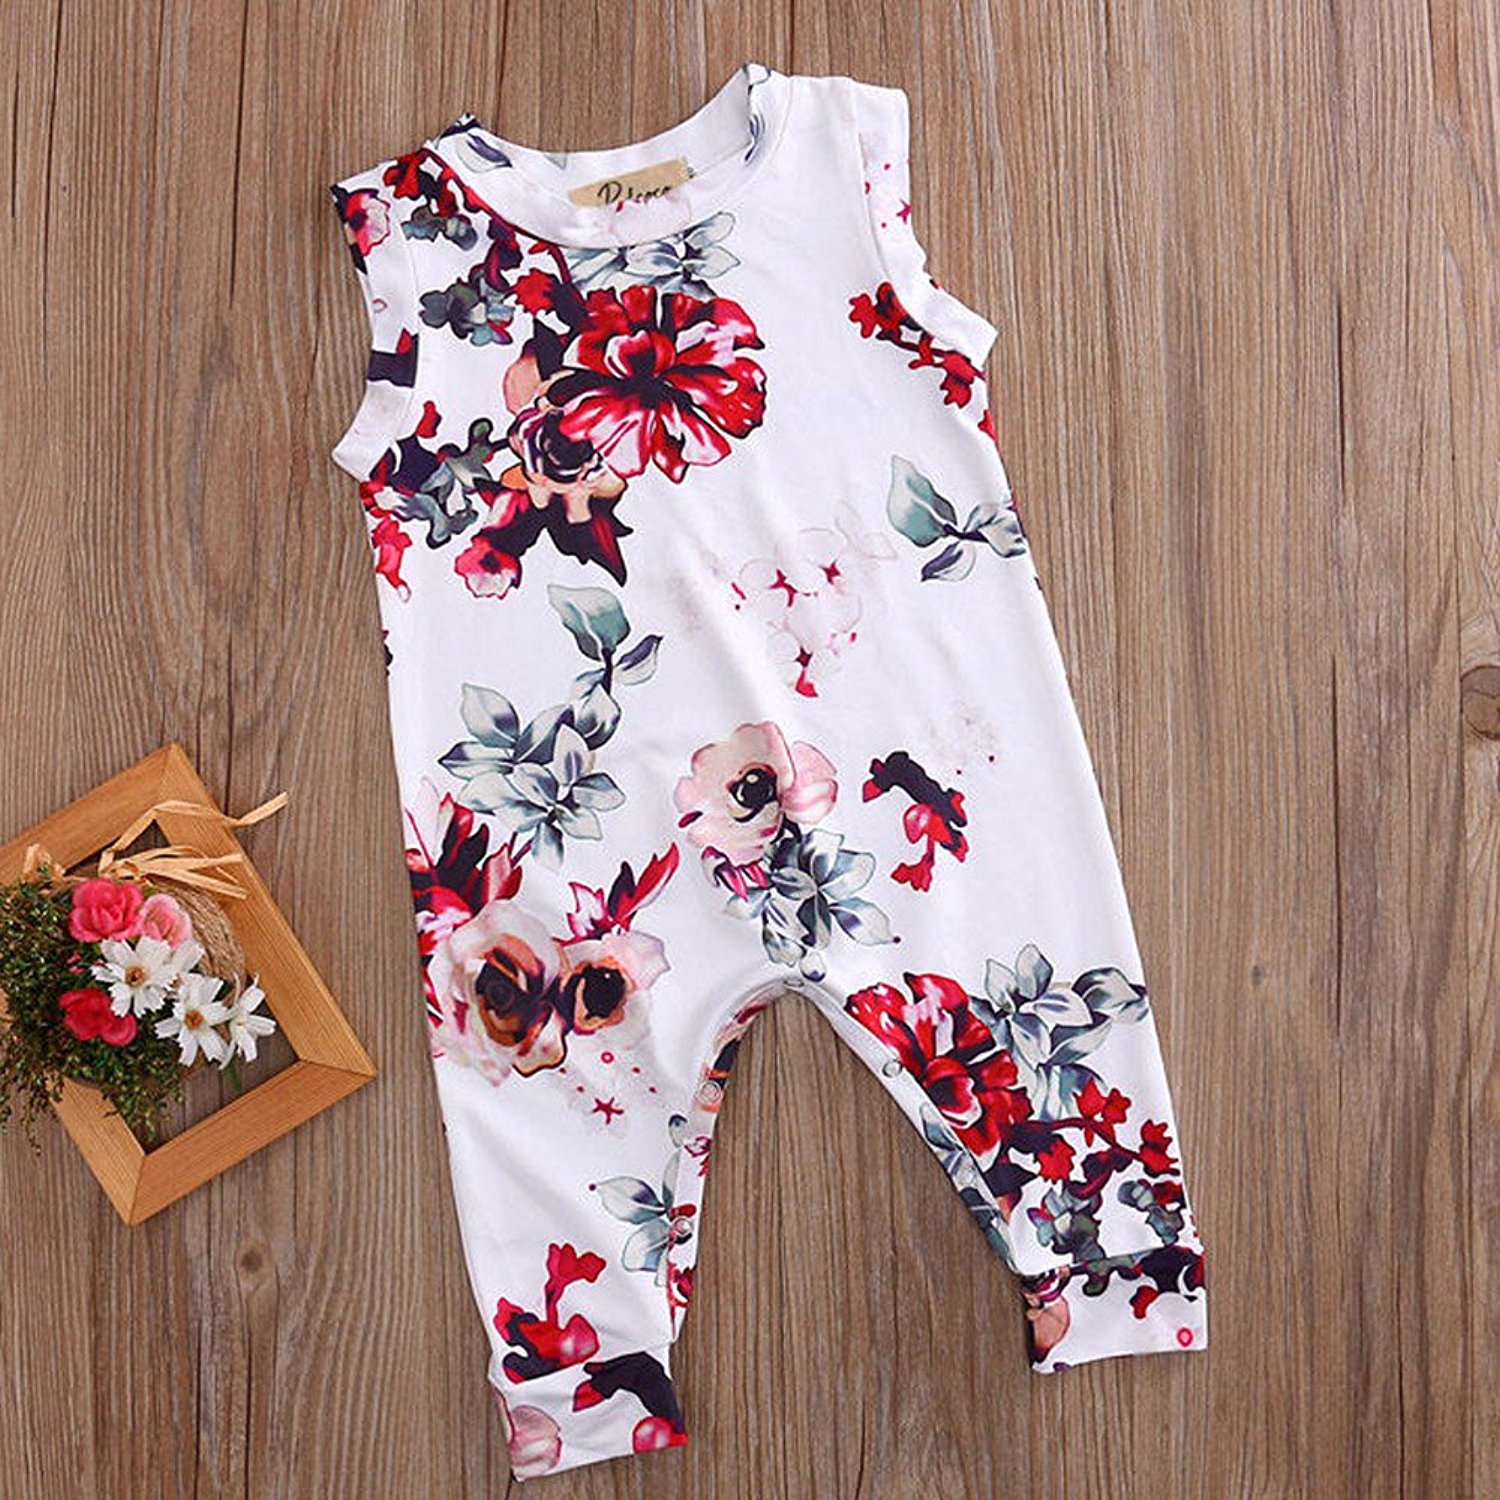 Toddler and Baby Girls Flower Print Long Romper - Adorable Amazon Outfits for Baby Girls and Toddlers by popular North Carolina style blogger, Glitter, Inc.